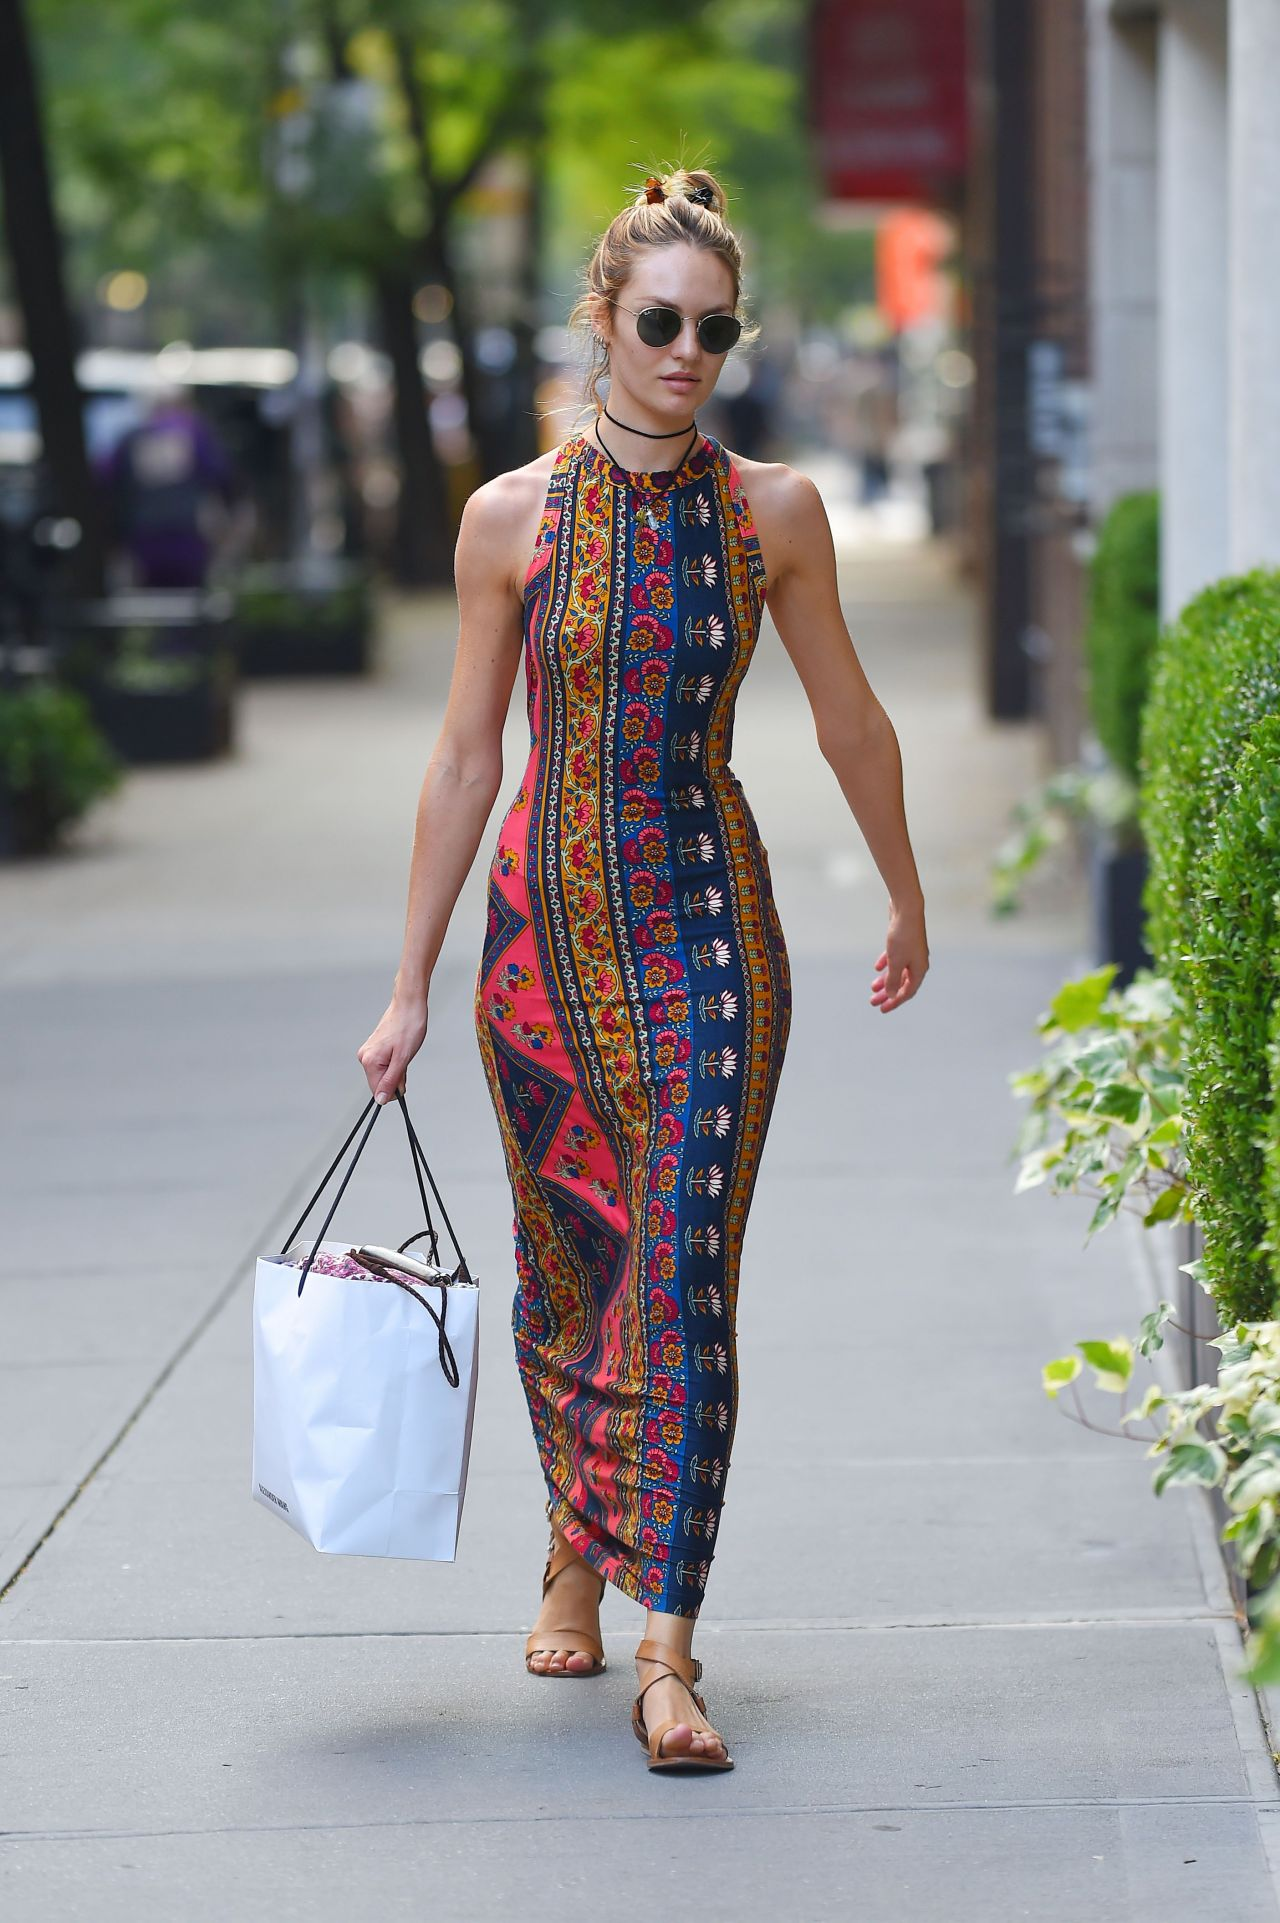 candice-swanepoel-in-stylish-summer-long-dress-out-in-nyc-july-2014_51